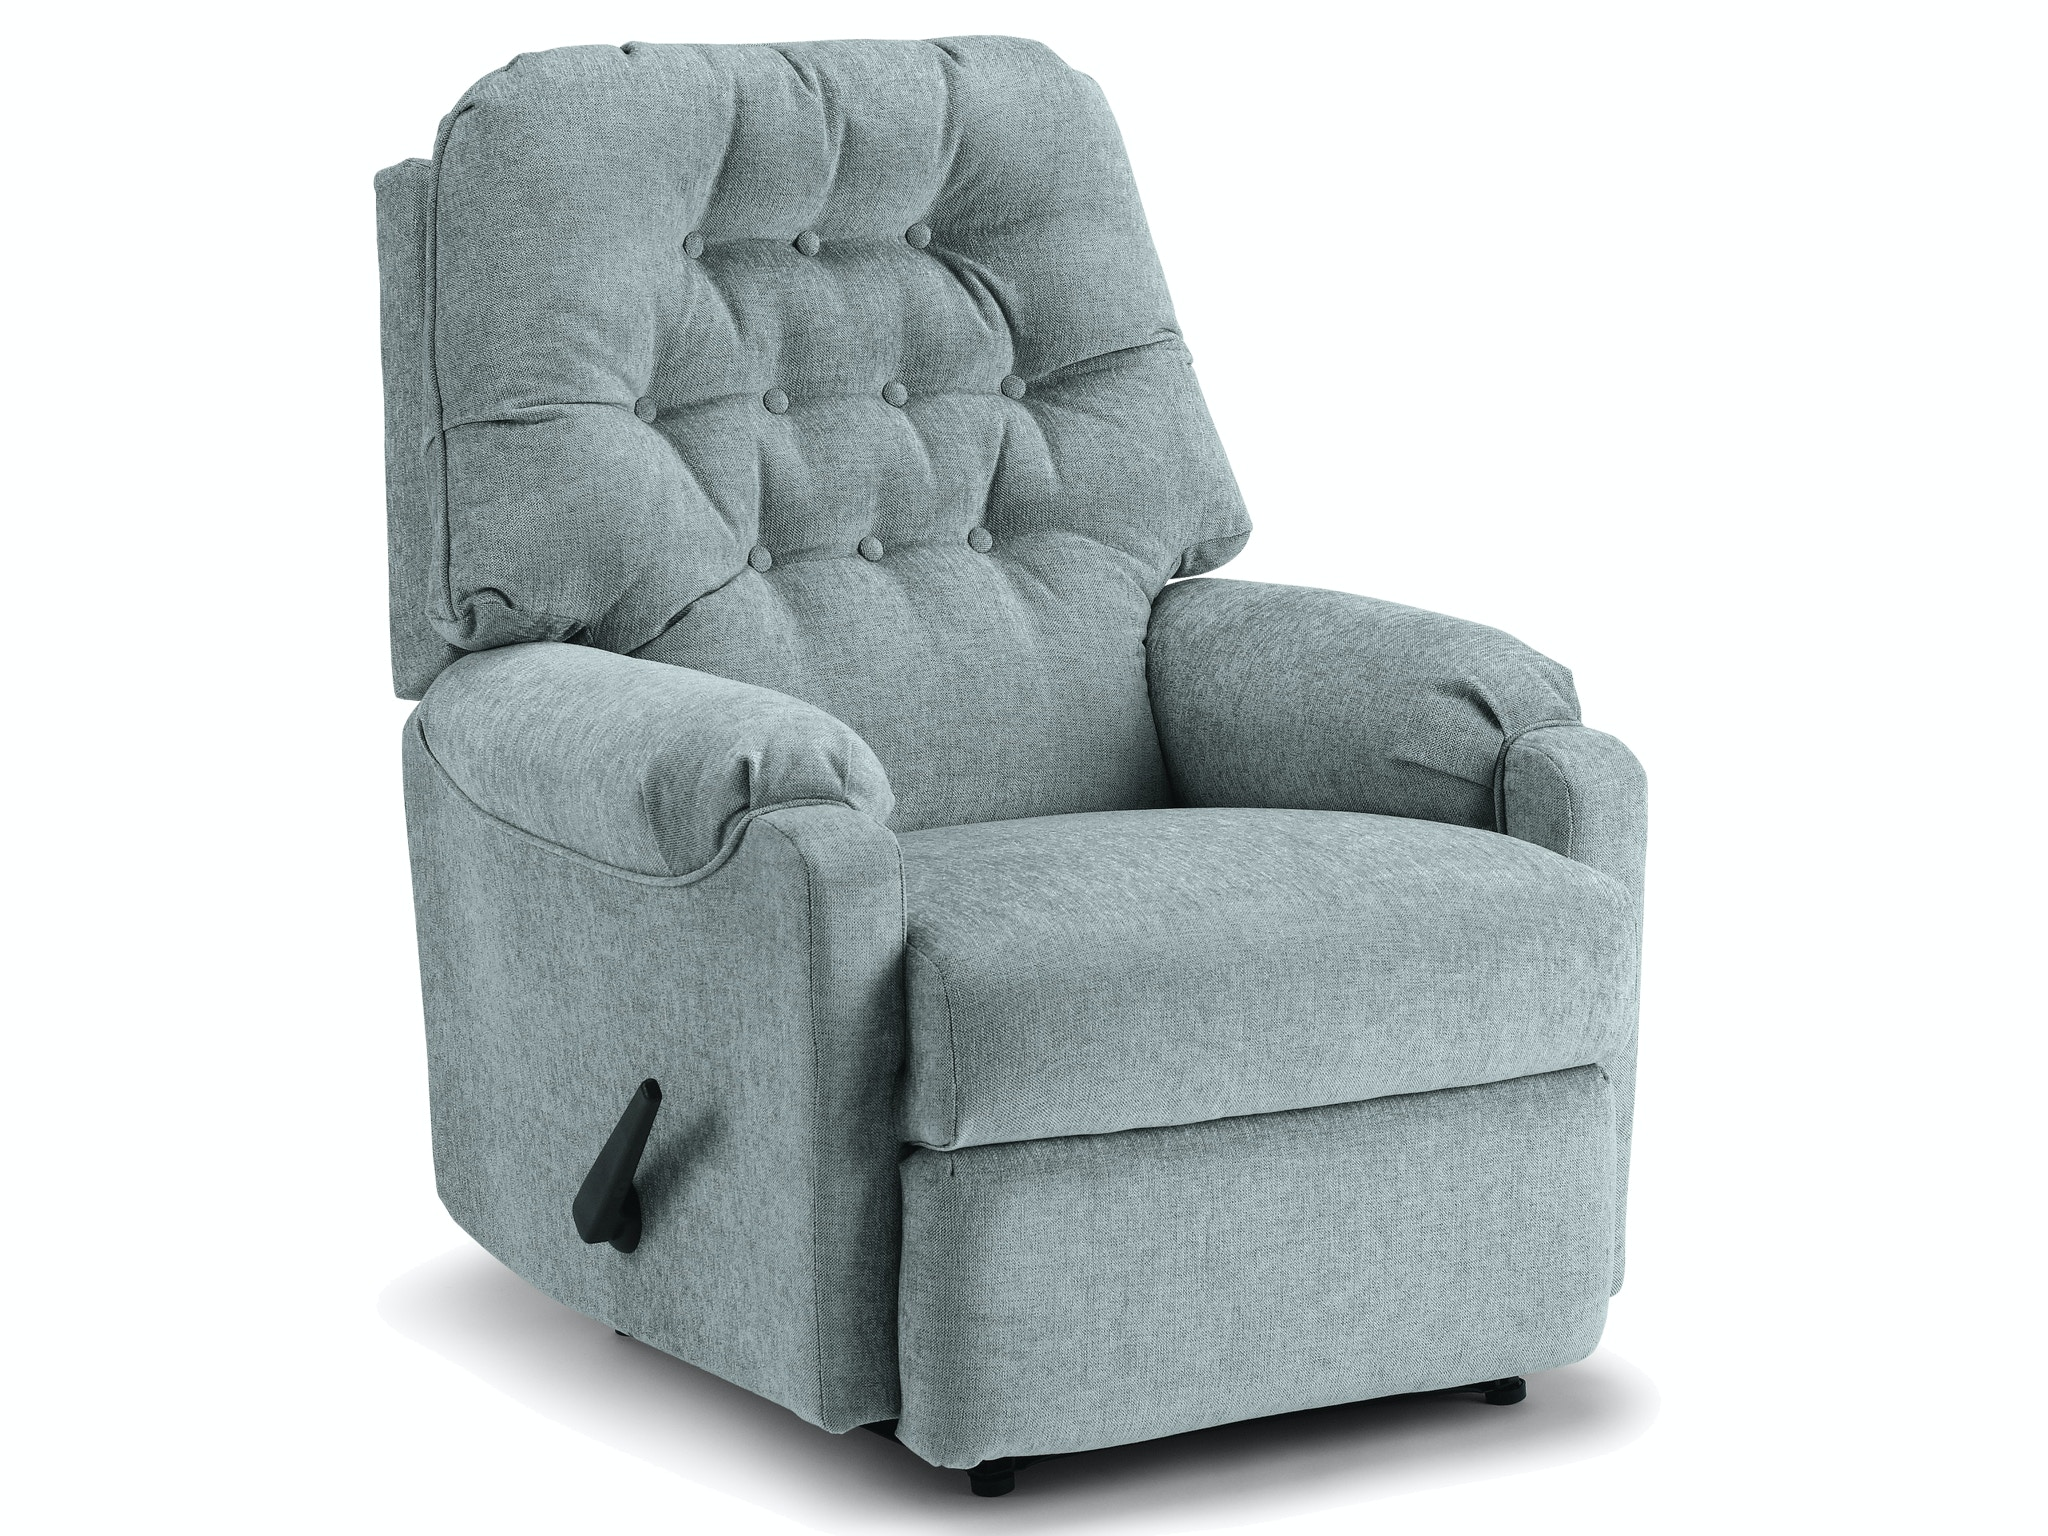 furniture save space. Its Smaller Size Also Makes It Idea For Quarters And Wanting To Save Space. Space Saver Recliner 1AW24 Best Home Furnishings Furniture E